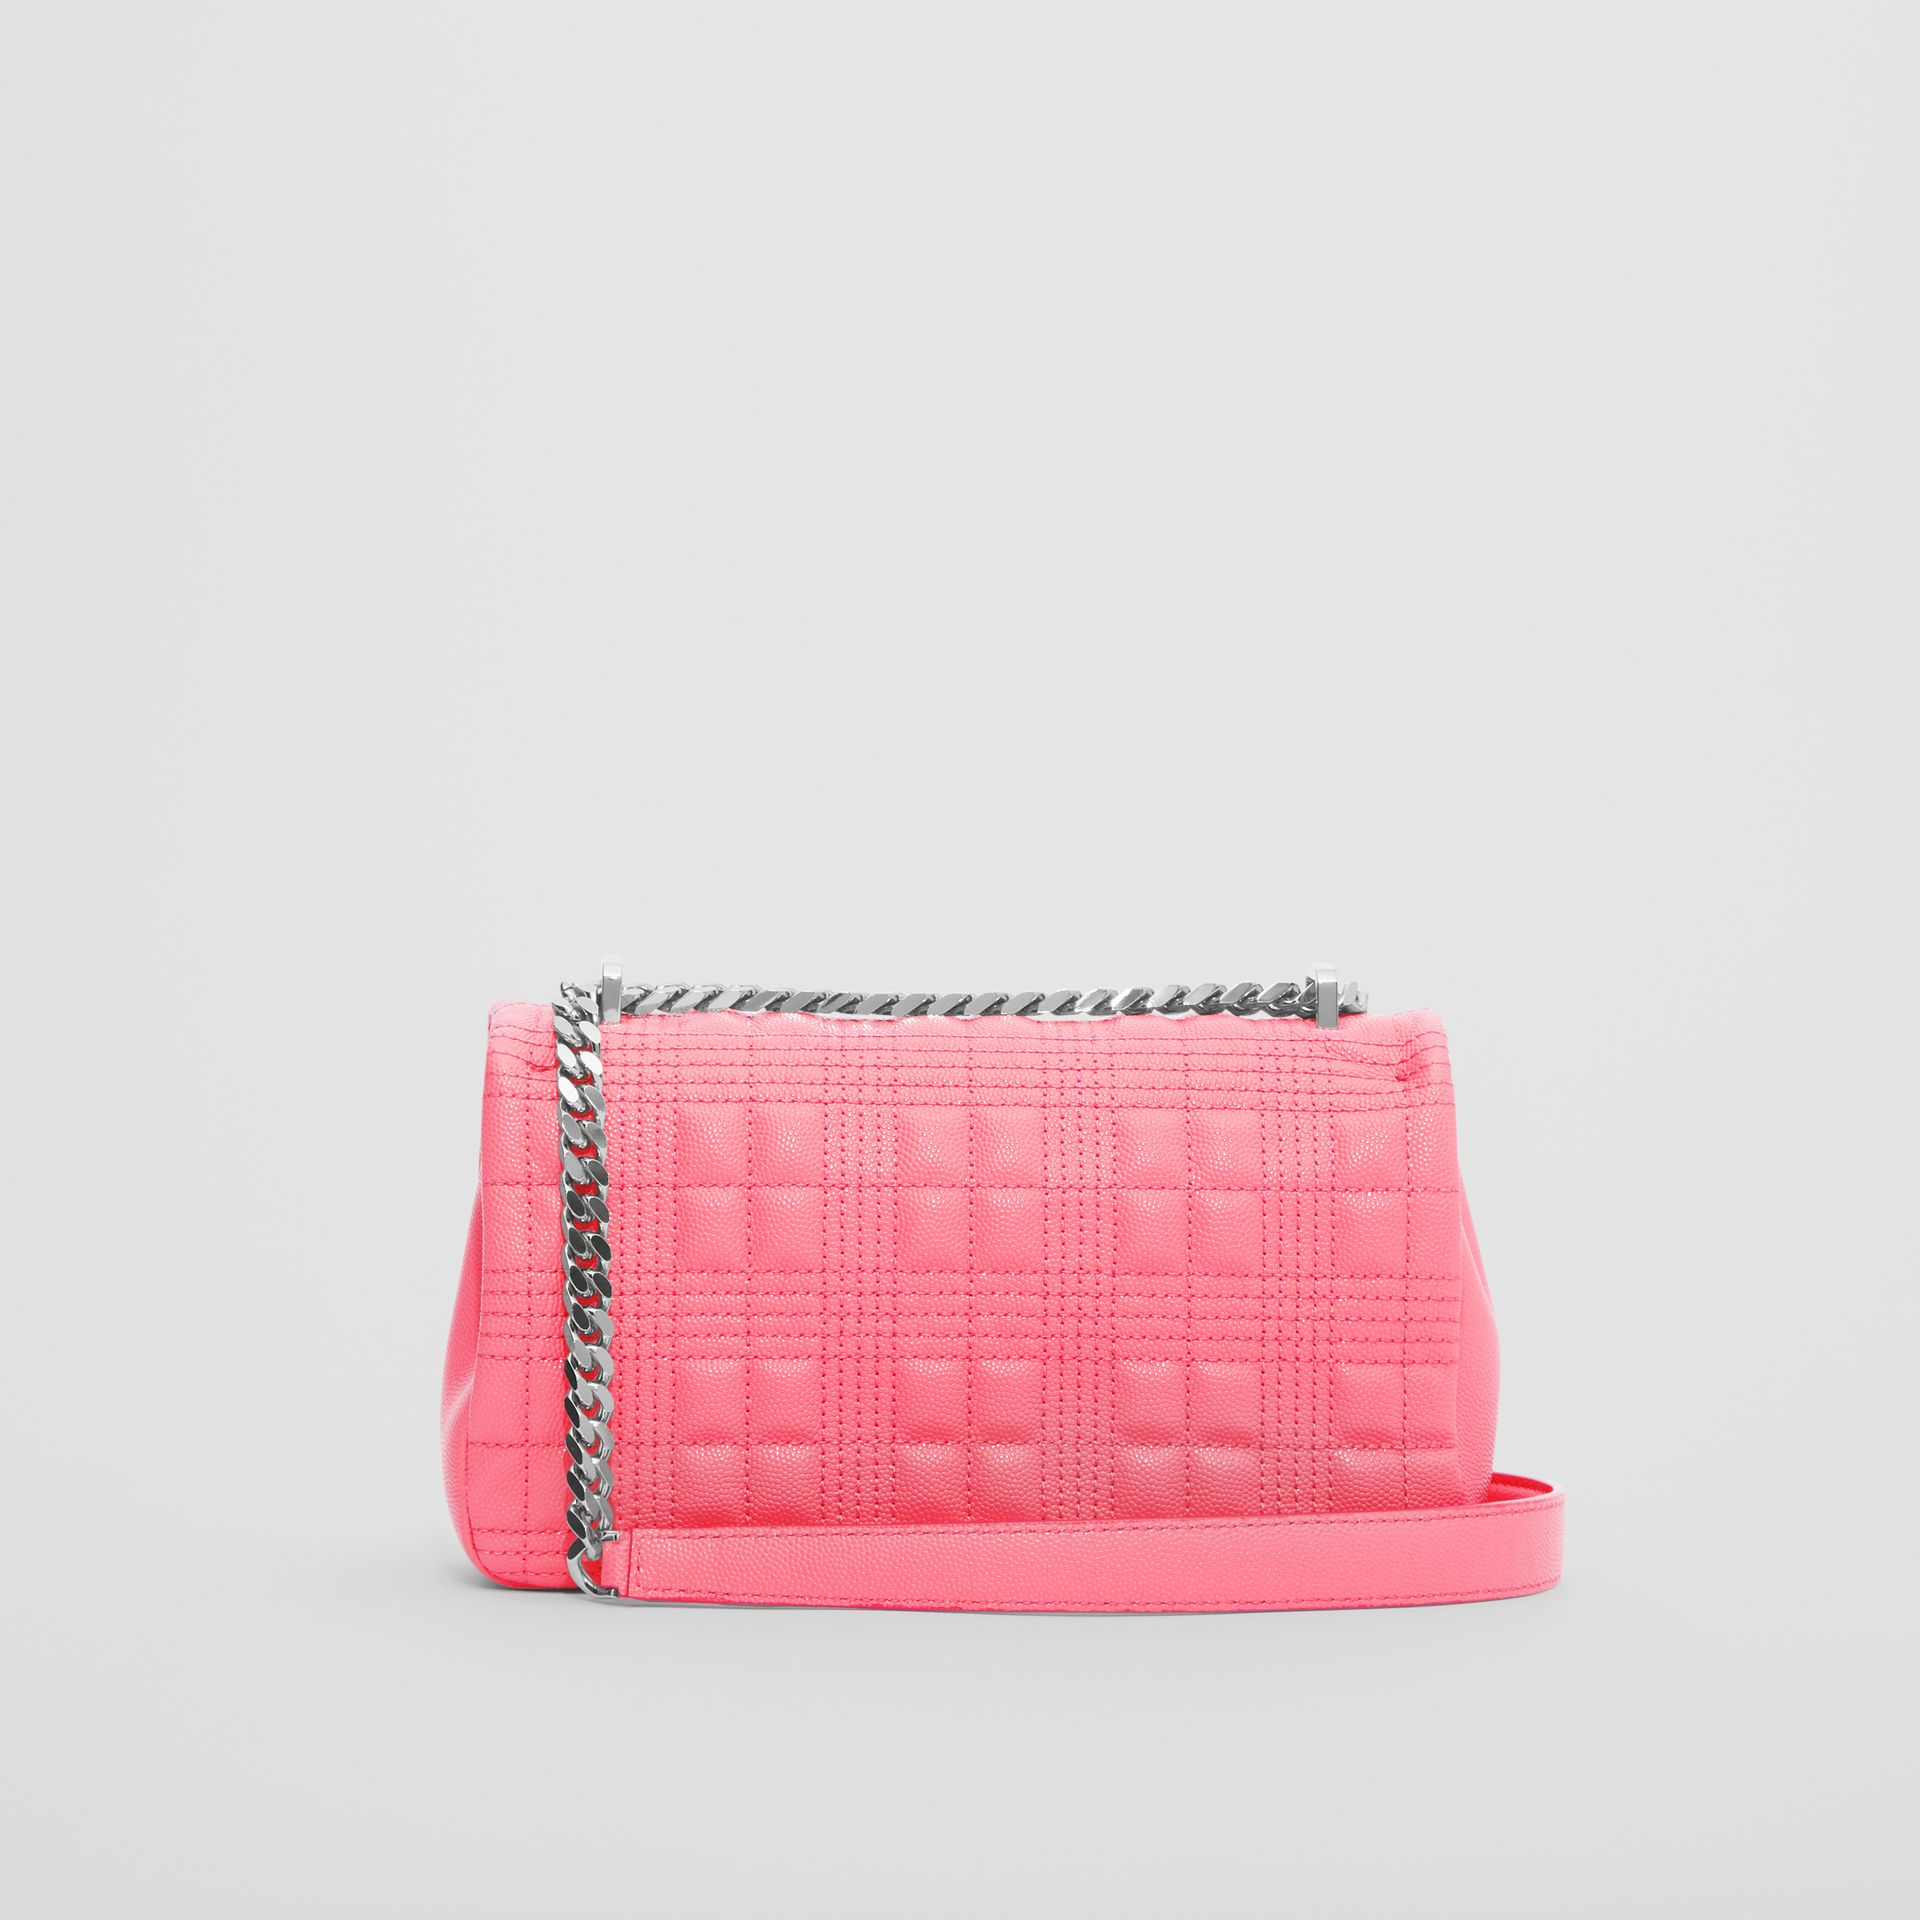 Small Quilted Grainy Leather Lola Bag in Candy Floss - Women | Burberry - gallery image 4